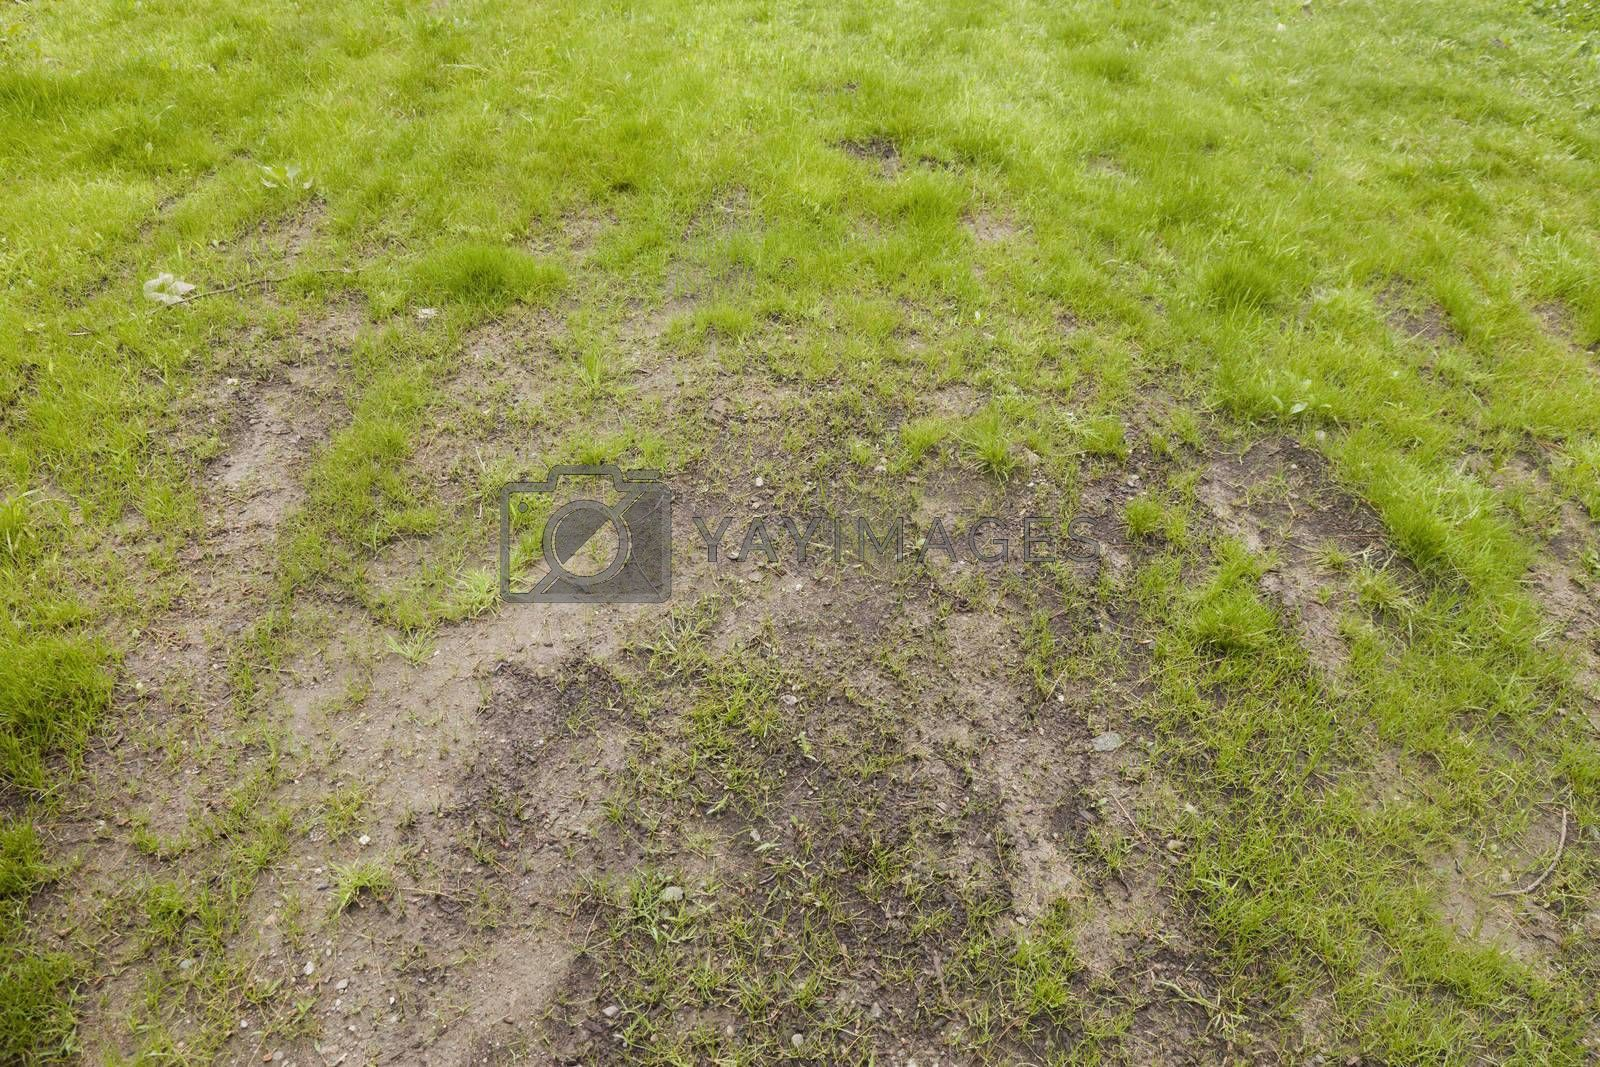 Royalty free image of Bad Lawn Care by mothy20